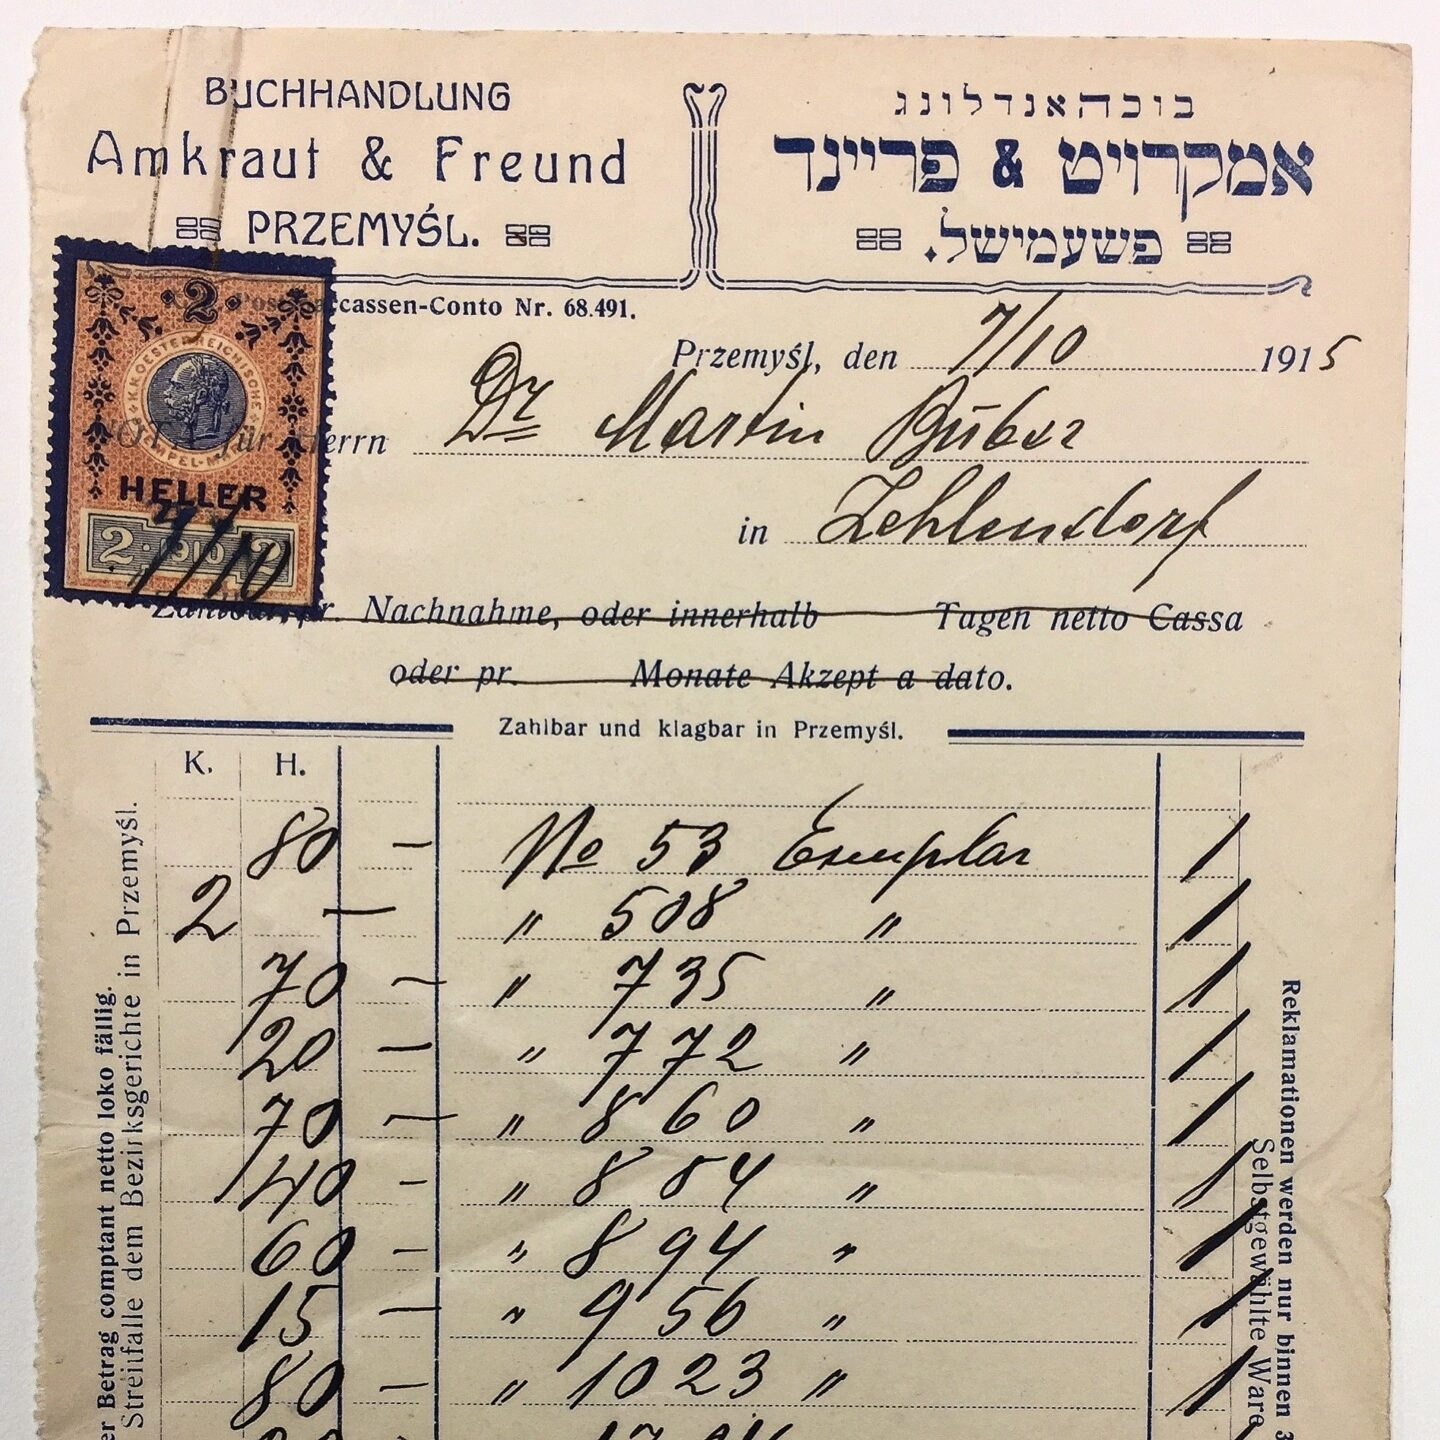 """<p><em>A receipt issued to Martin Buber in October <span class=""""numbers"""">1915</span> for his purchase of thirty-three Hasidic volumes from Amkraut <span class=""""amp"""">&amp;</span>&nbsp;Freund, a&nbsp;Yiddish/Hebrew bookshop in Przemyśl, Galicia. Source: National Library of Israel, Martin Buber Archives, <span class=""""caps"""">ARC</span>. Ms. Var. <span class=""""numbers"""">350</span> <span class=""""numbers"""">04</span>&nbsp;<span class=""""numbers"""">47</span></em></p>"""